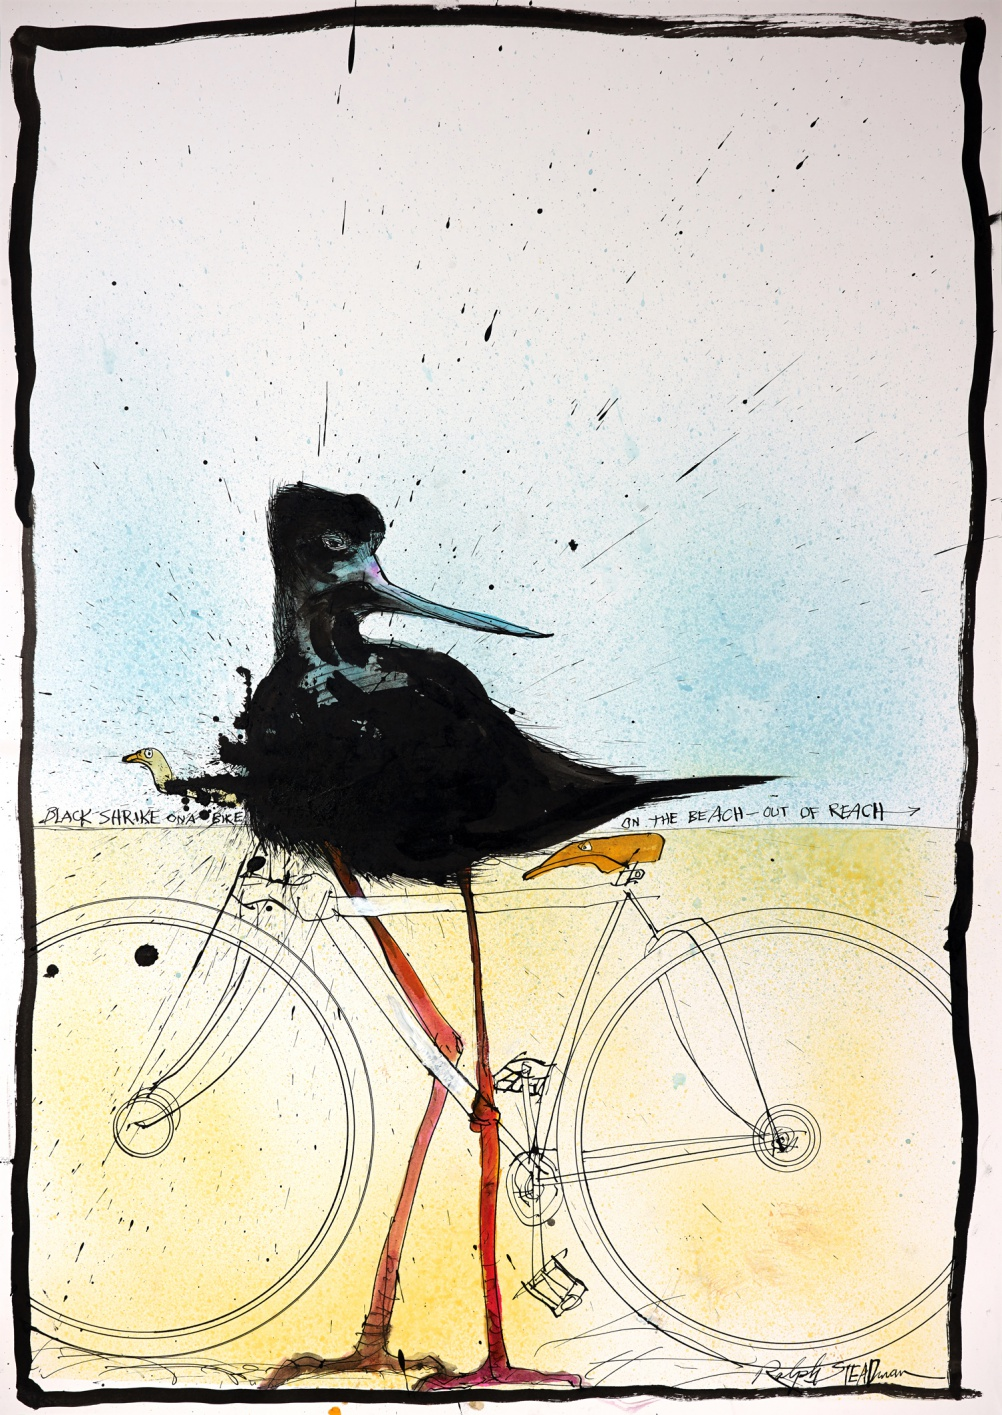 NEXTINCTIONS Black Shrike on a Bike 16714